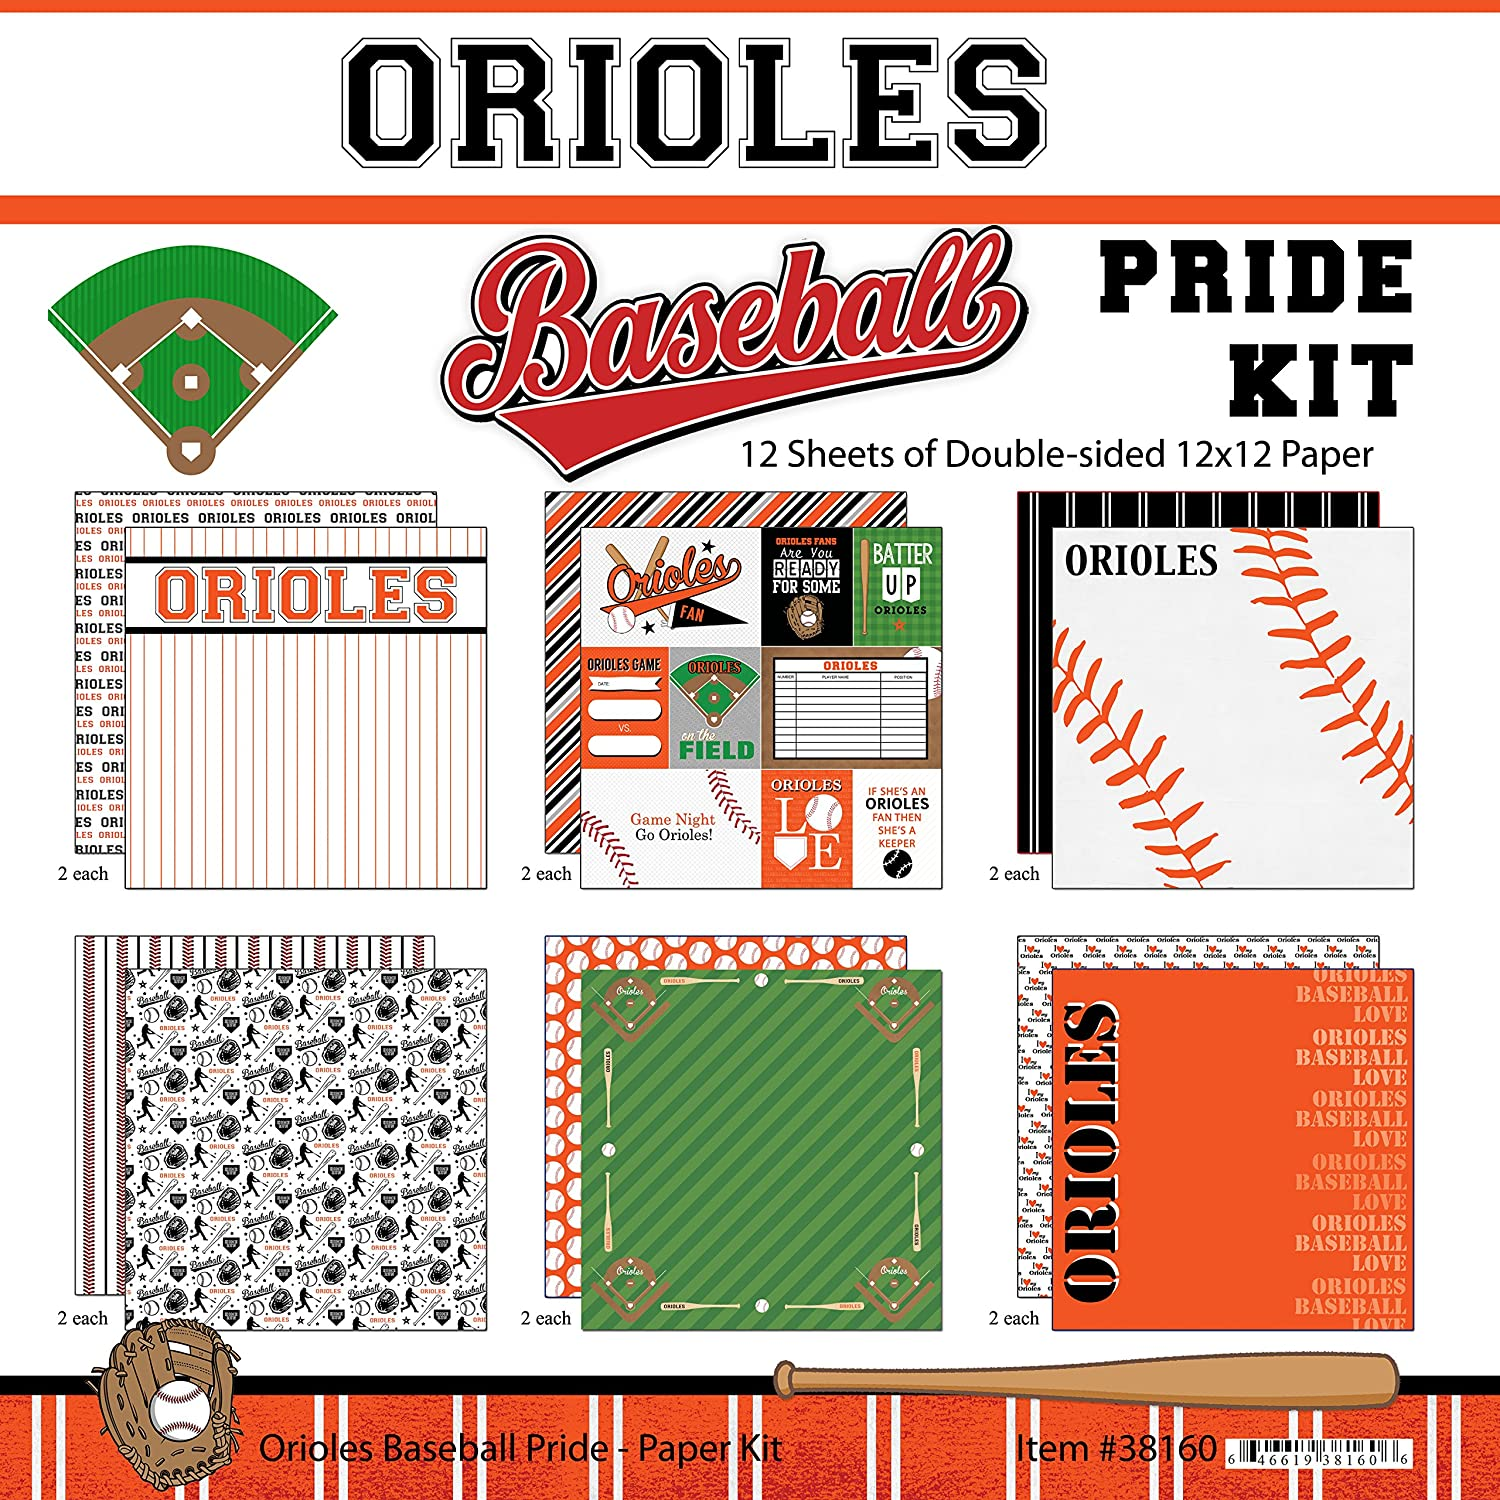 Scrapbook Customs Orioles Pride Baseball Kit Inc. 38160